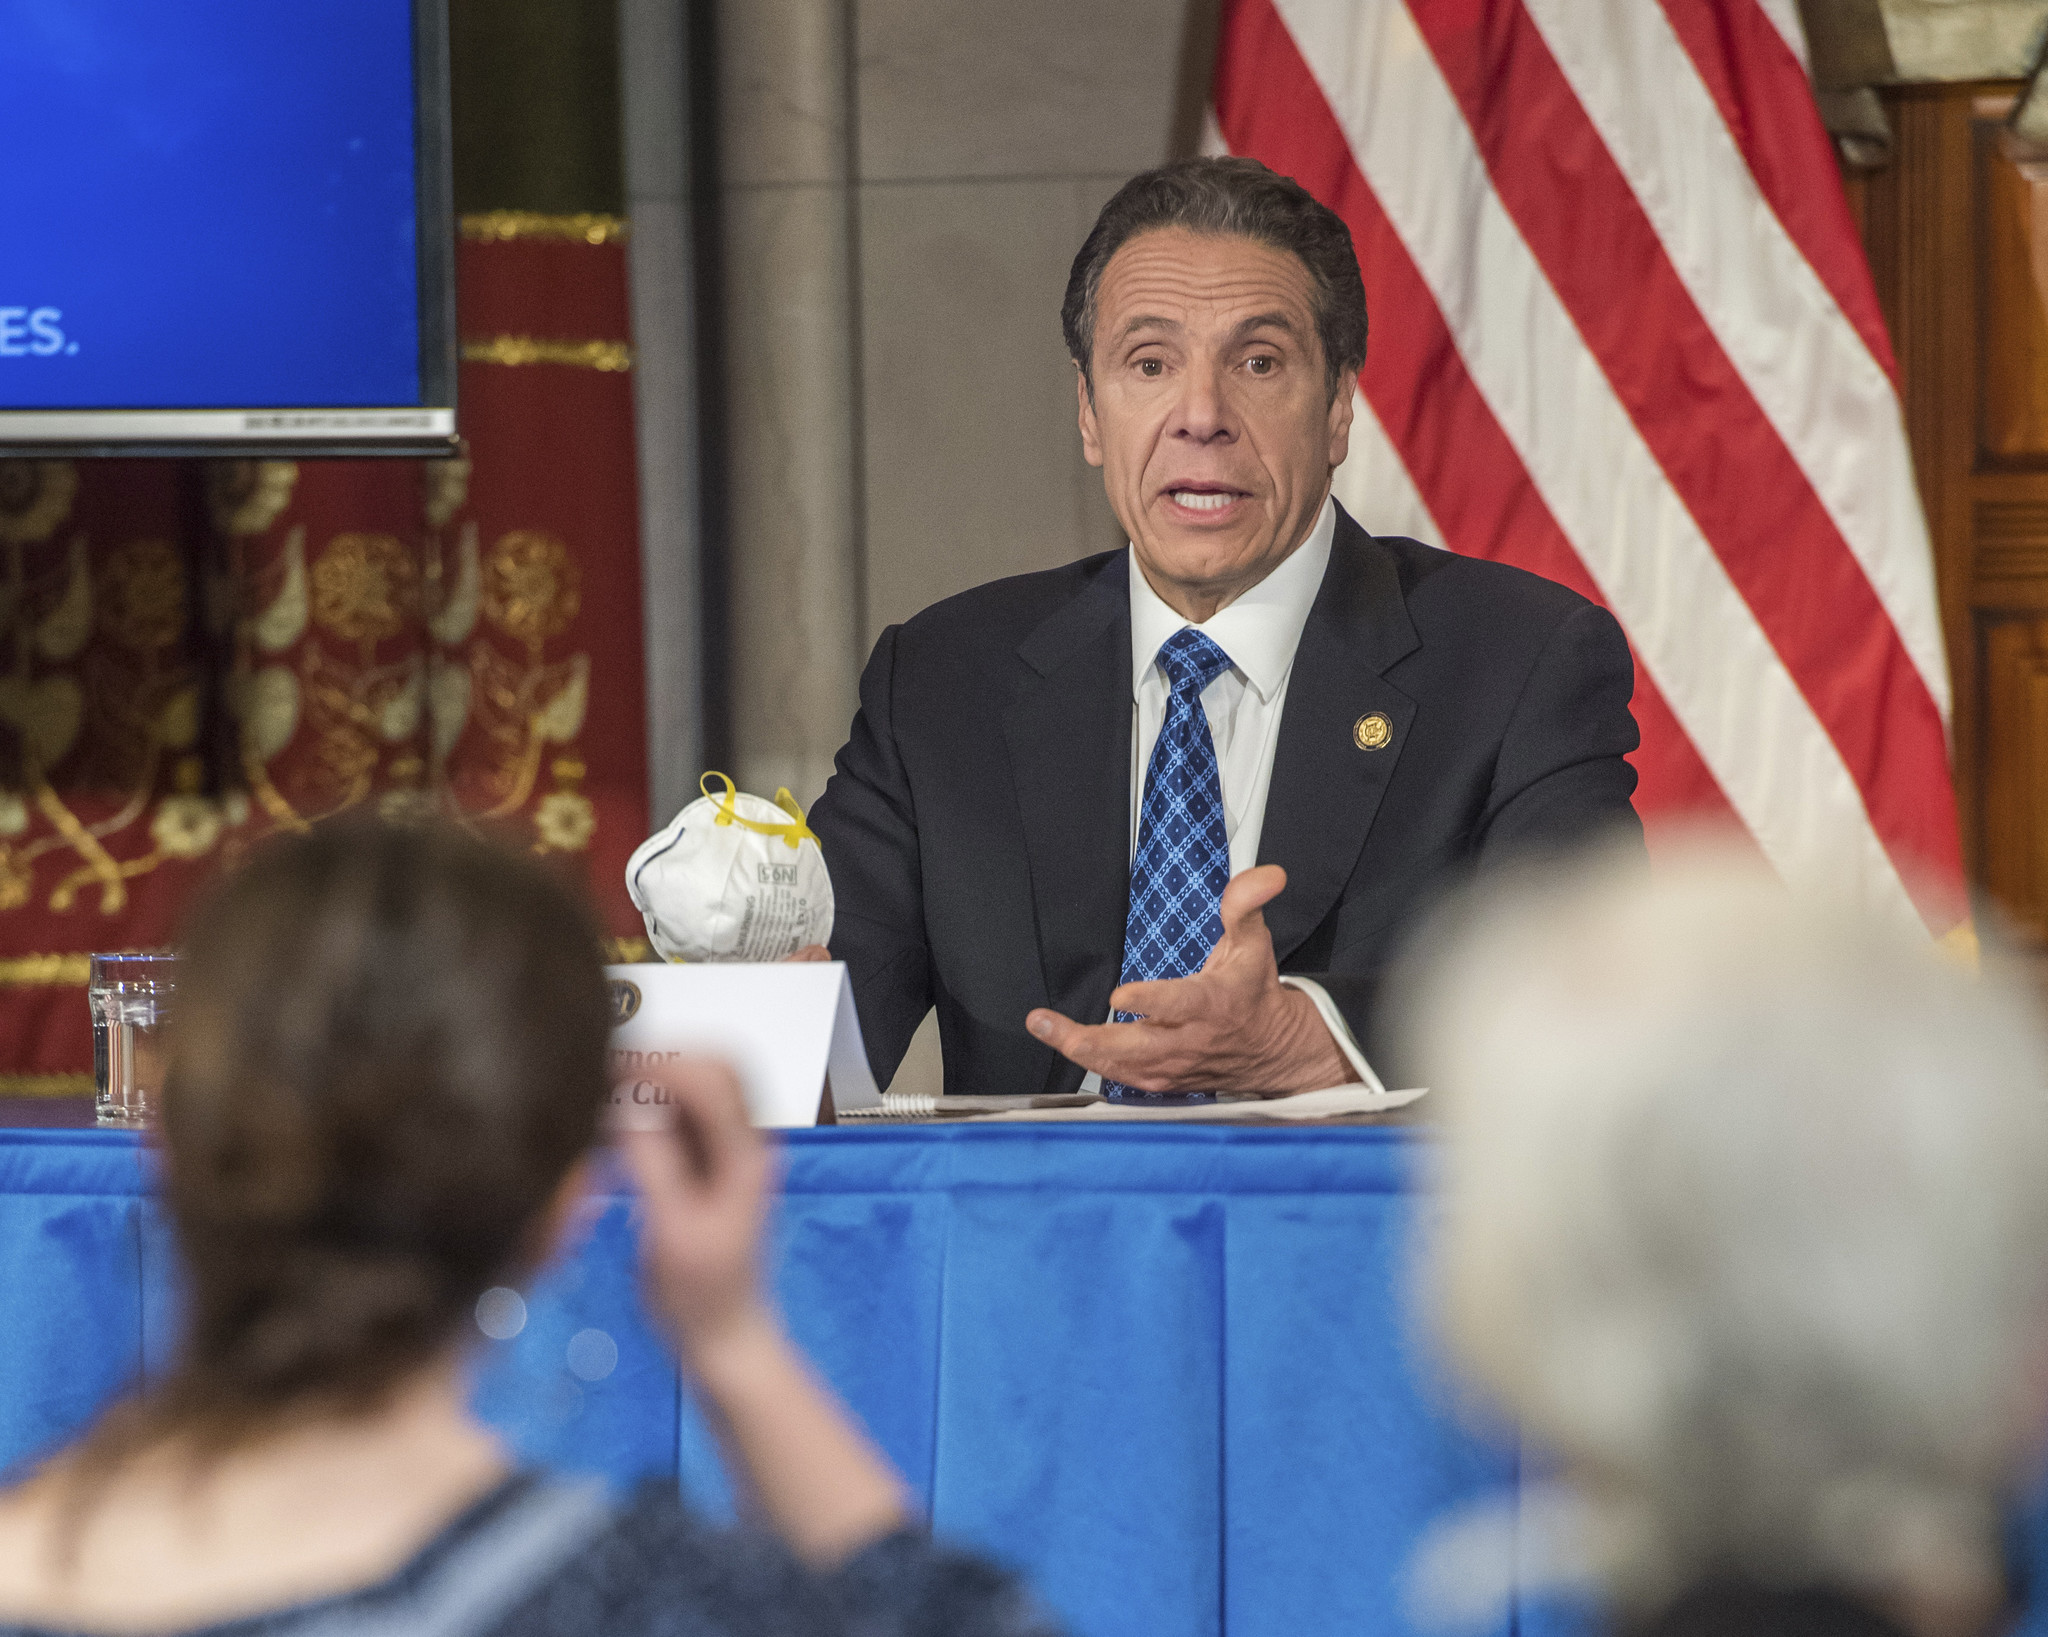 'Self portrait of America': Cuomo reveals donated masks from across the U.S.